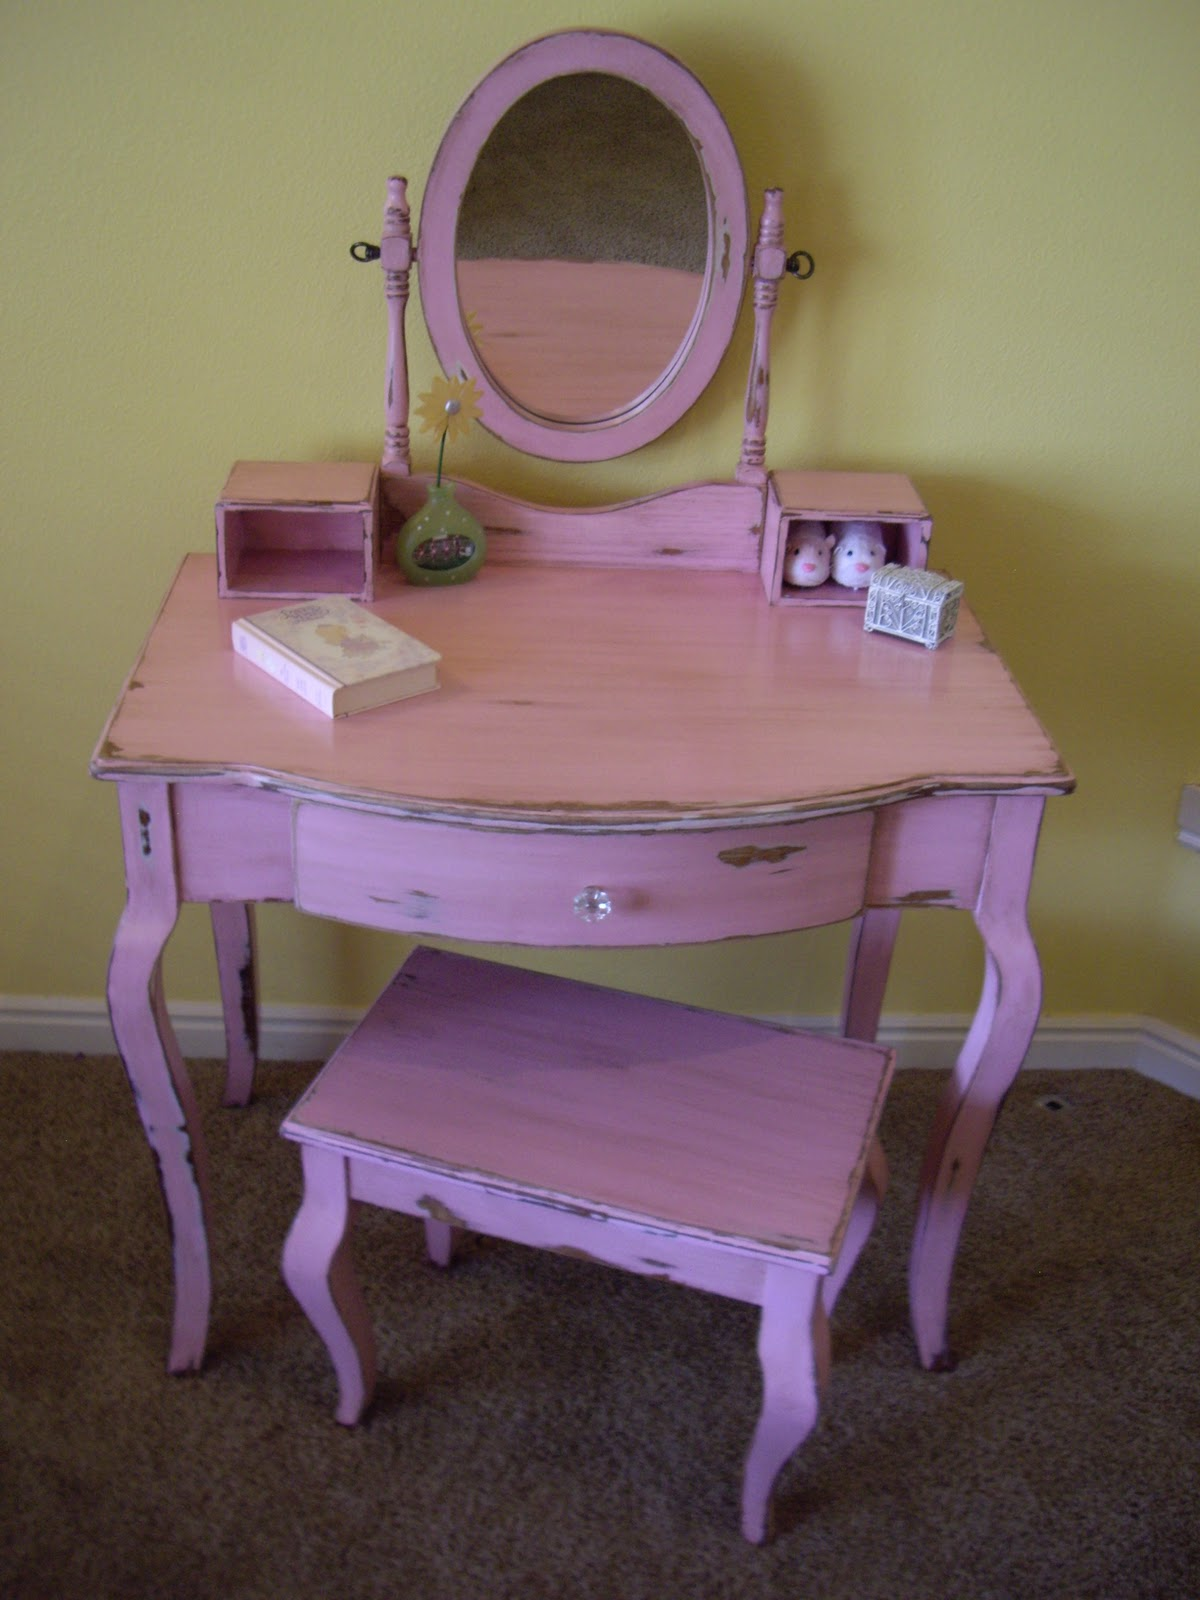 Cute Vanity Chairs A Brush Of Whimsy Sweet Pink Vanity